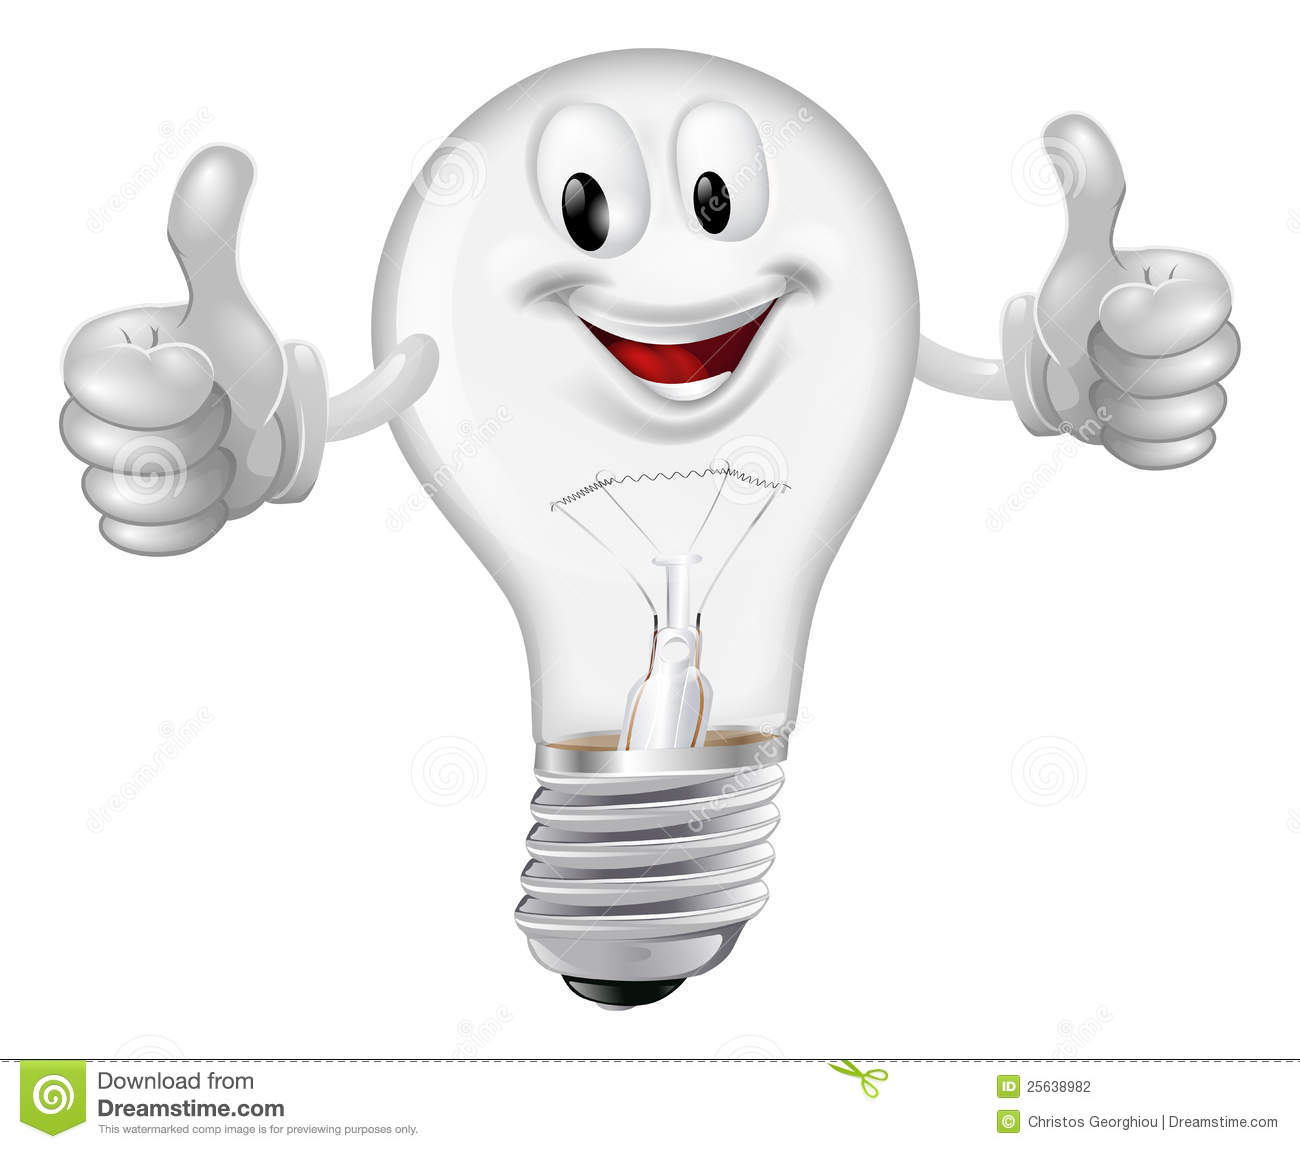 Stock Photography Lightbulb Man Image25638982 on cartoon mouth 22